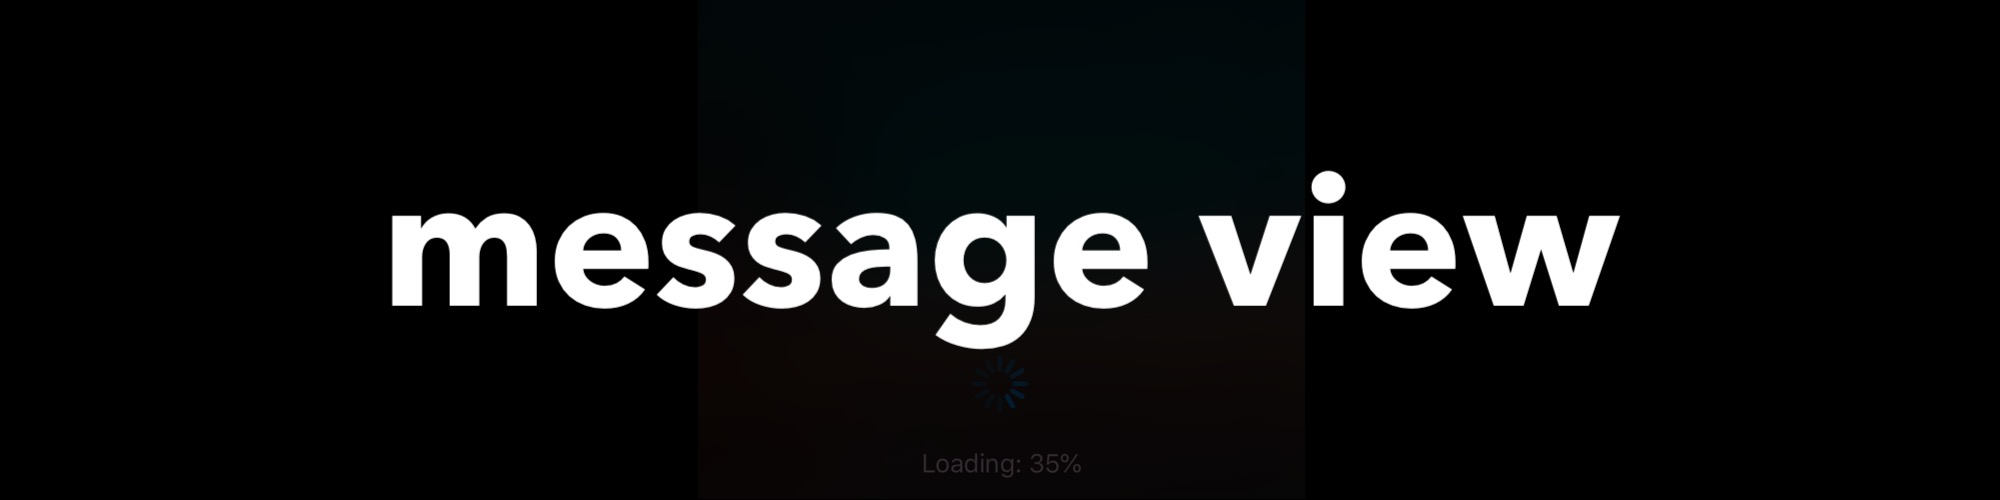 message-view